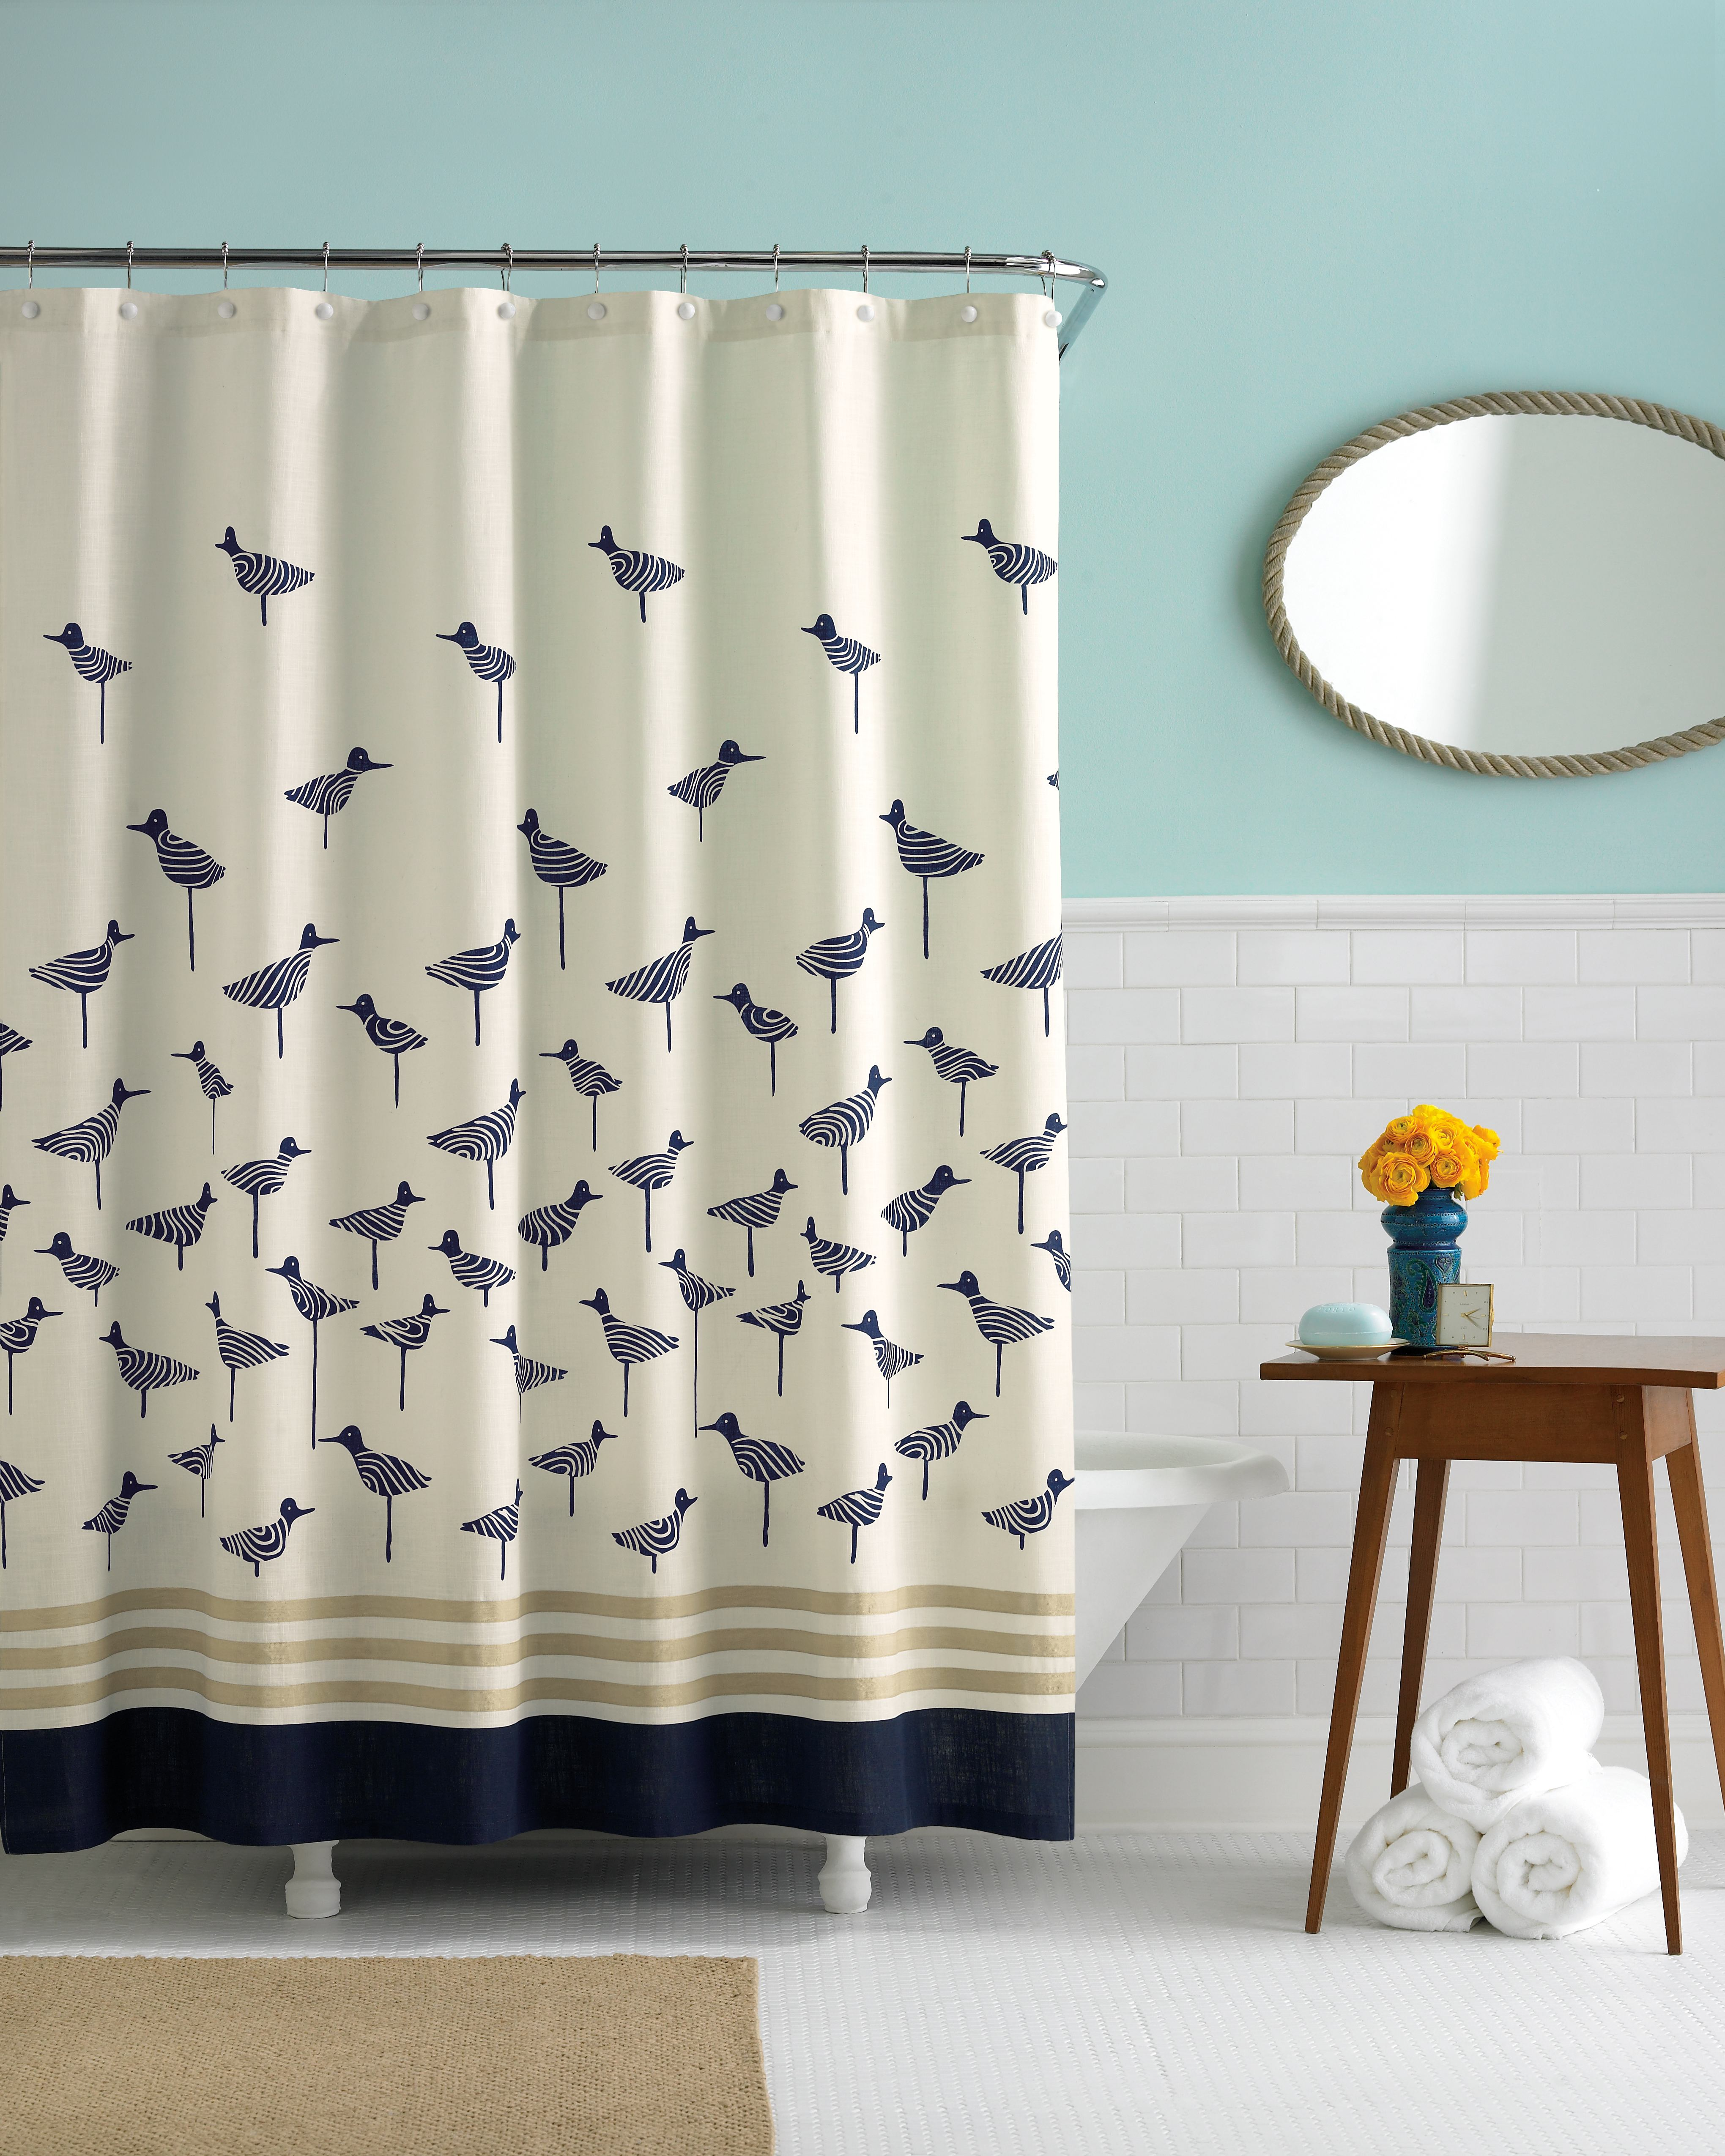 Bed Bath and Beyond Shower Curtains fer Great Look and